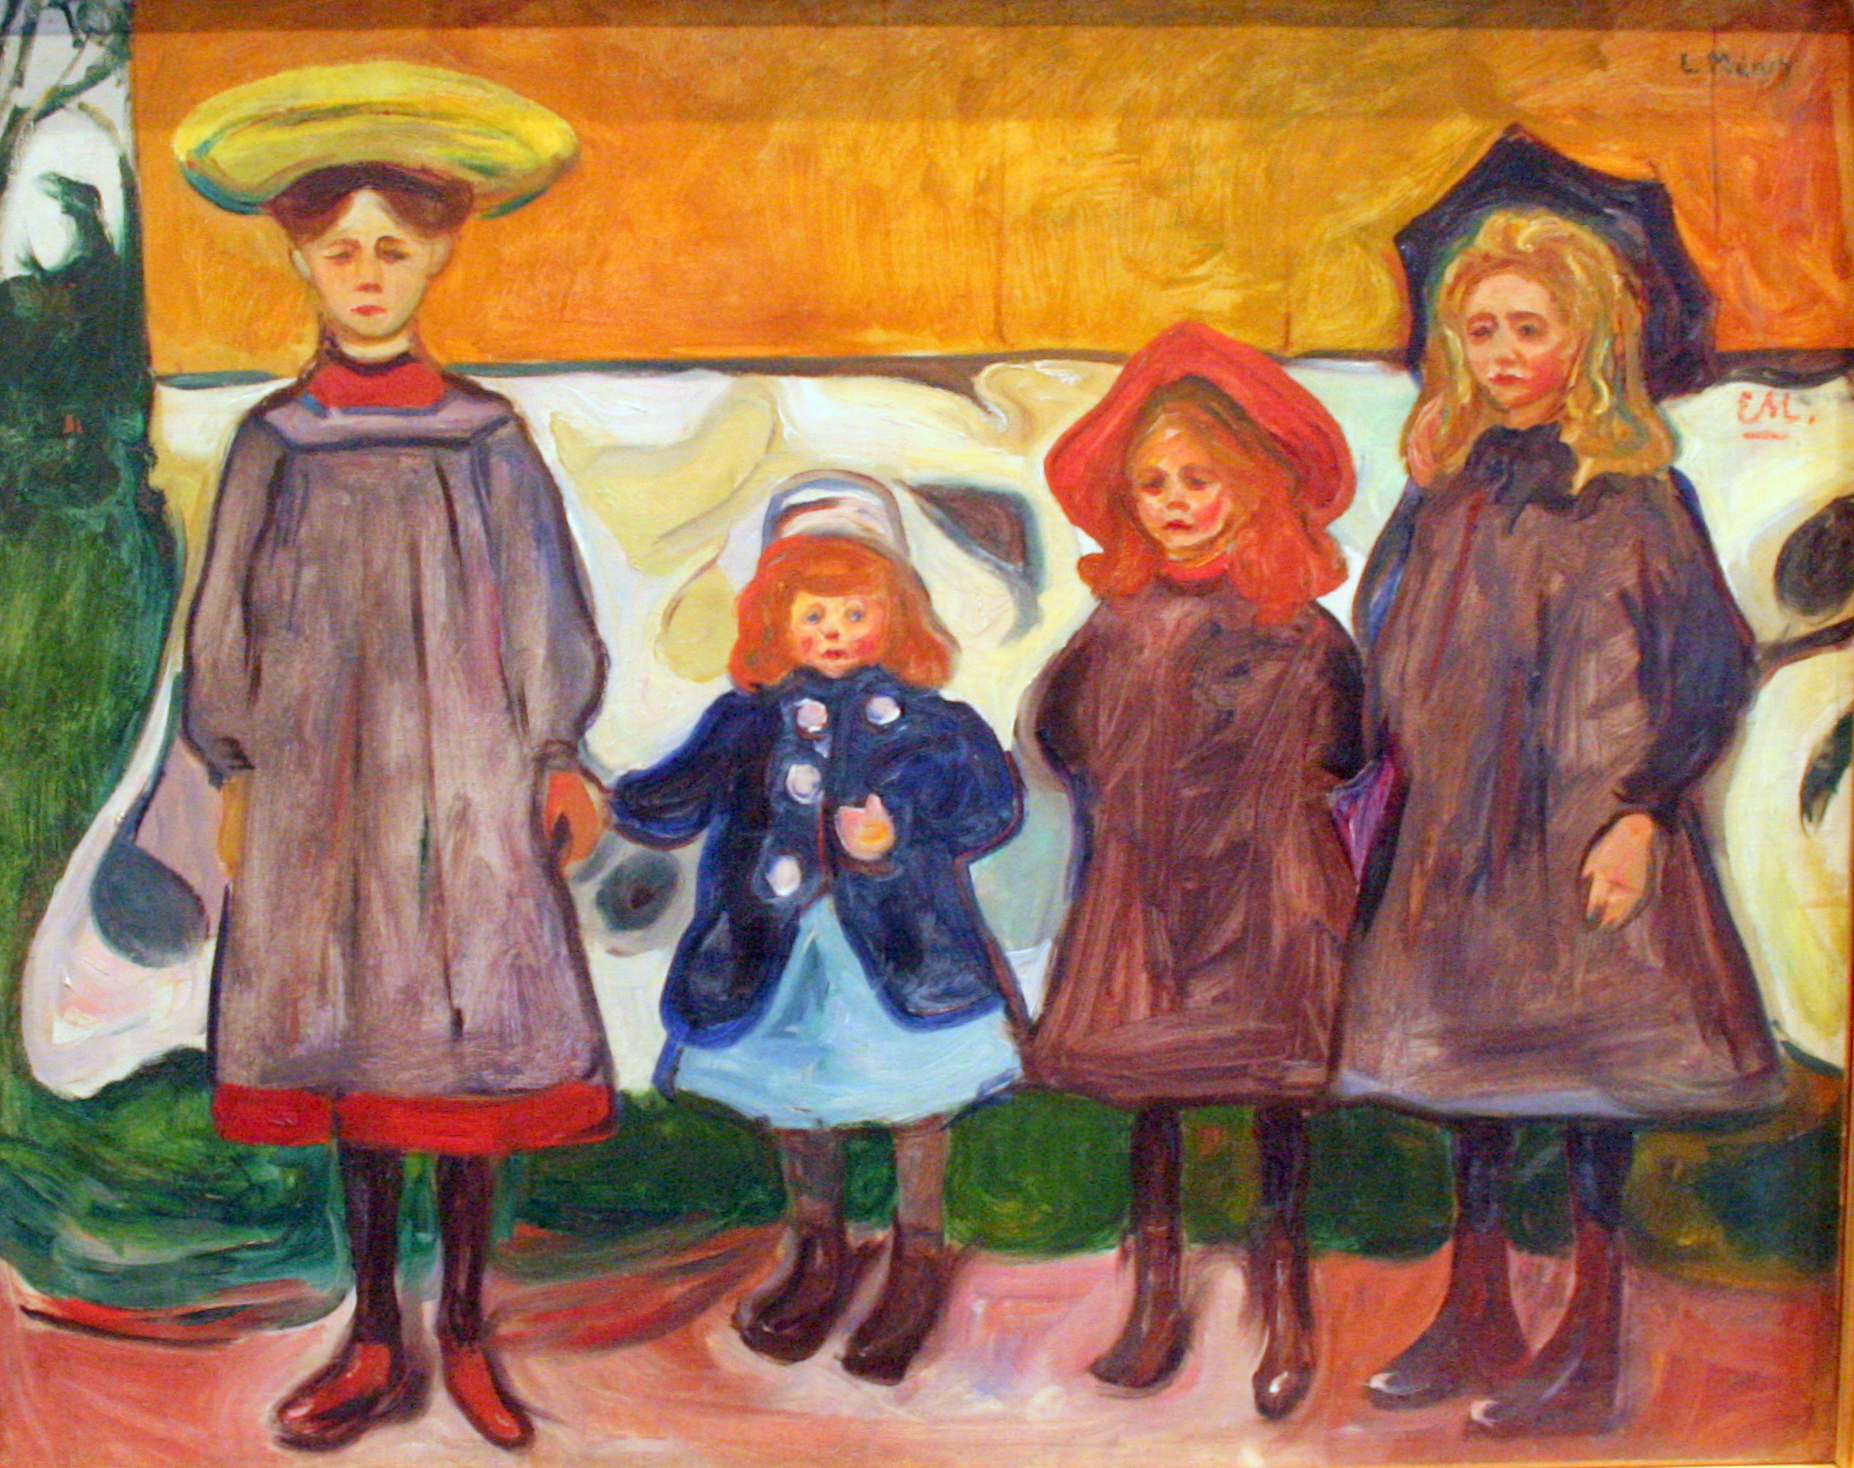 Tall girl's fashion // The Munch Museum, Oslo